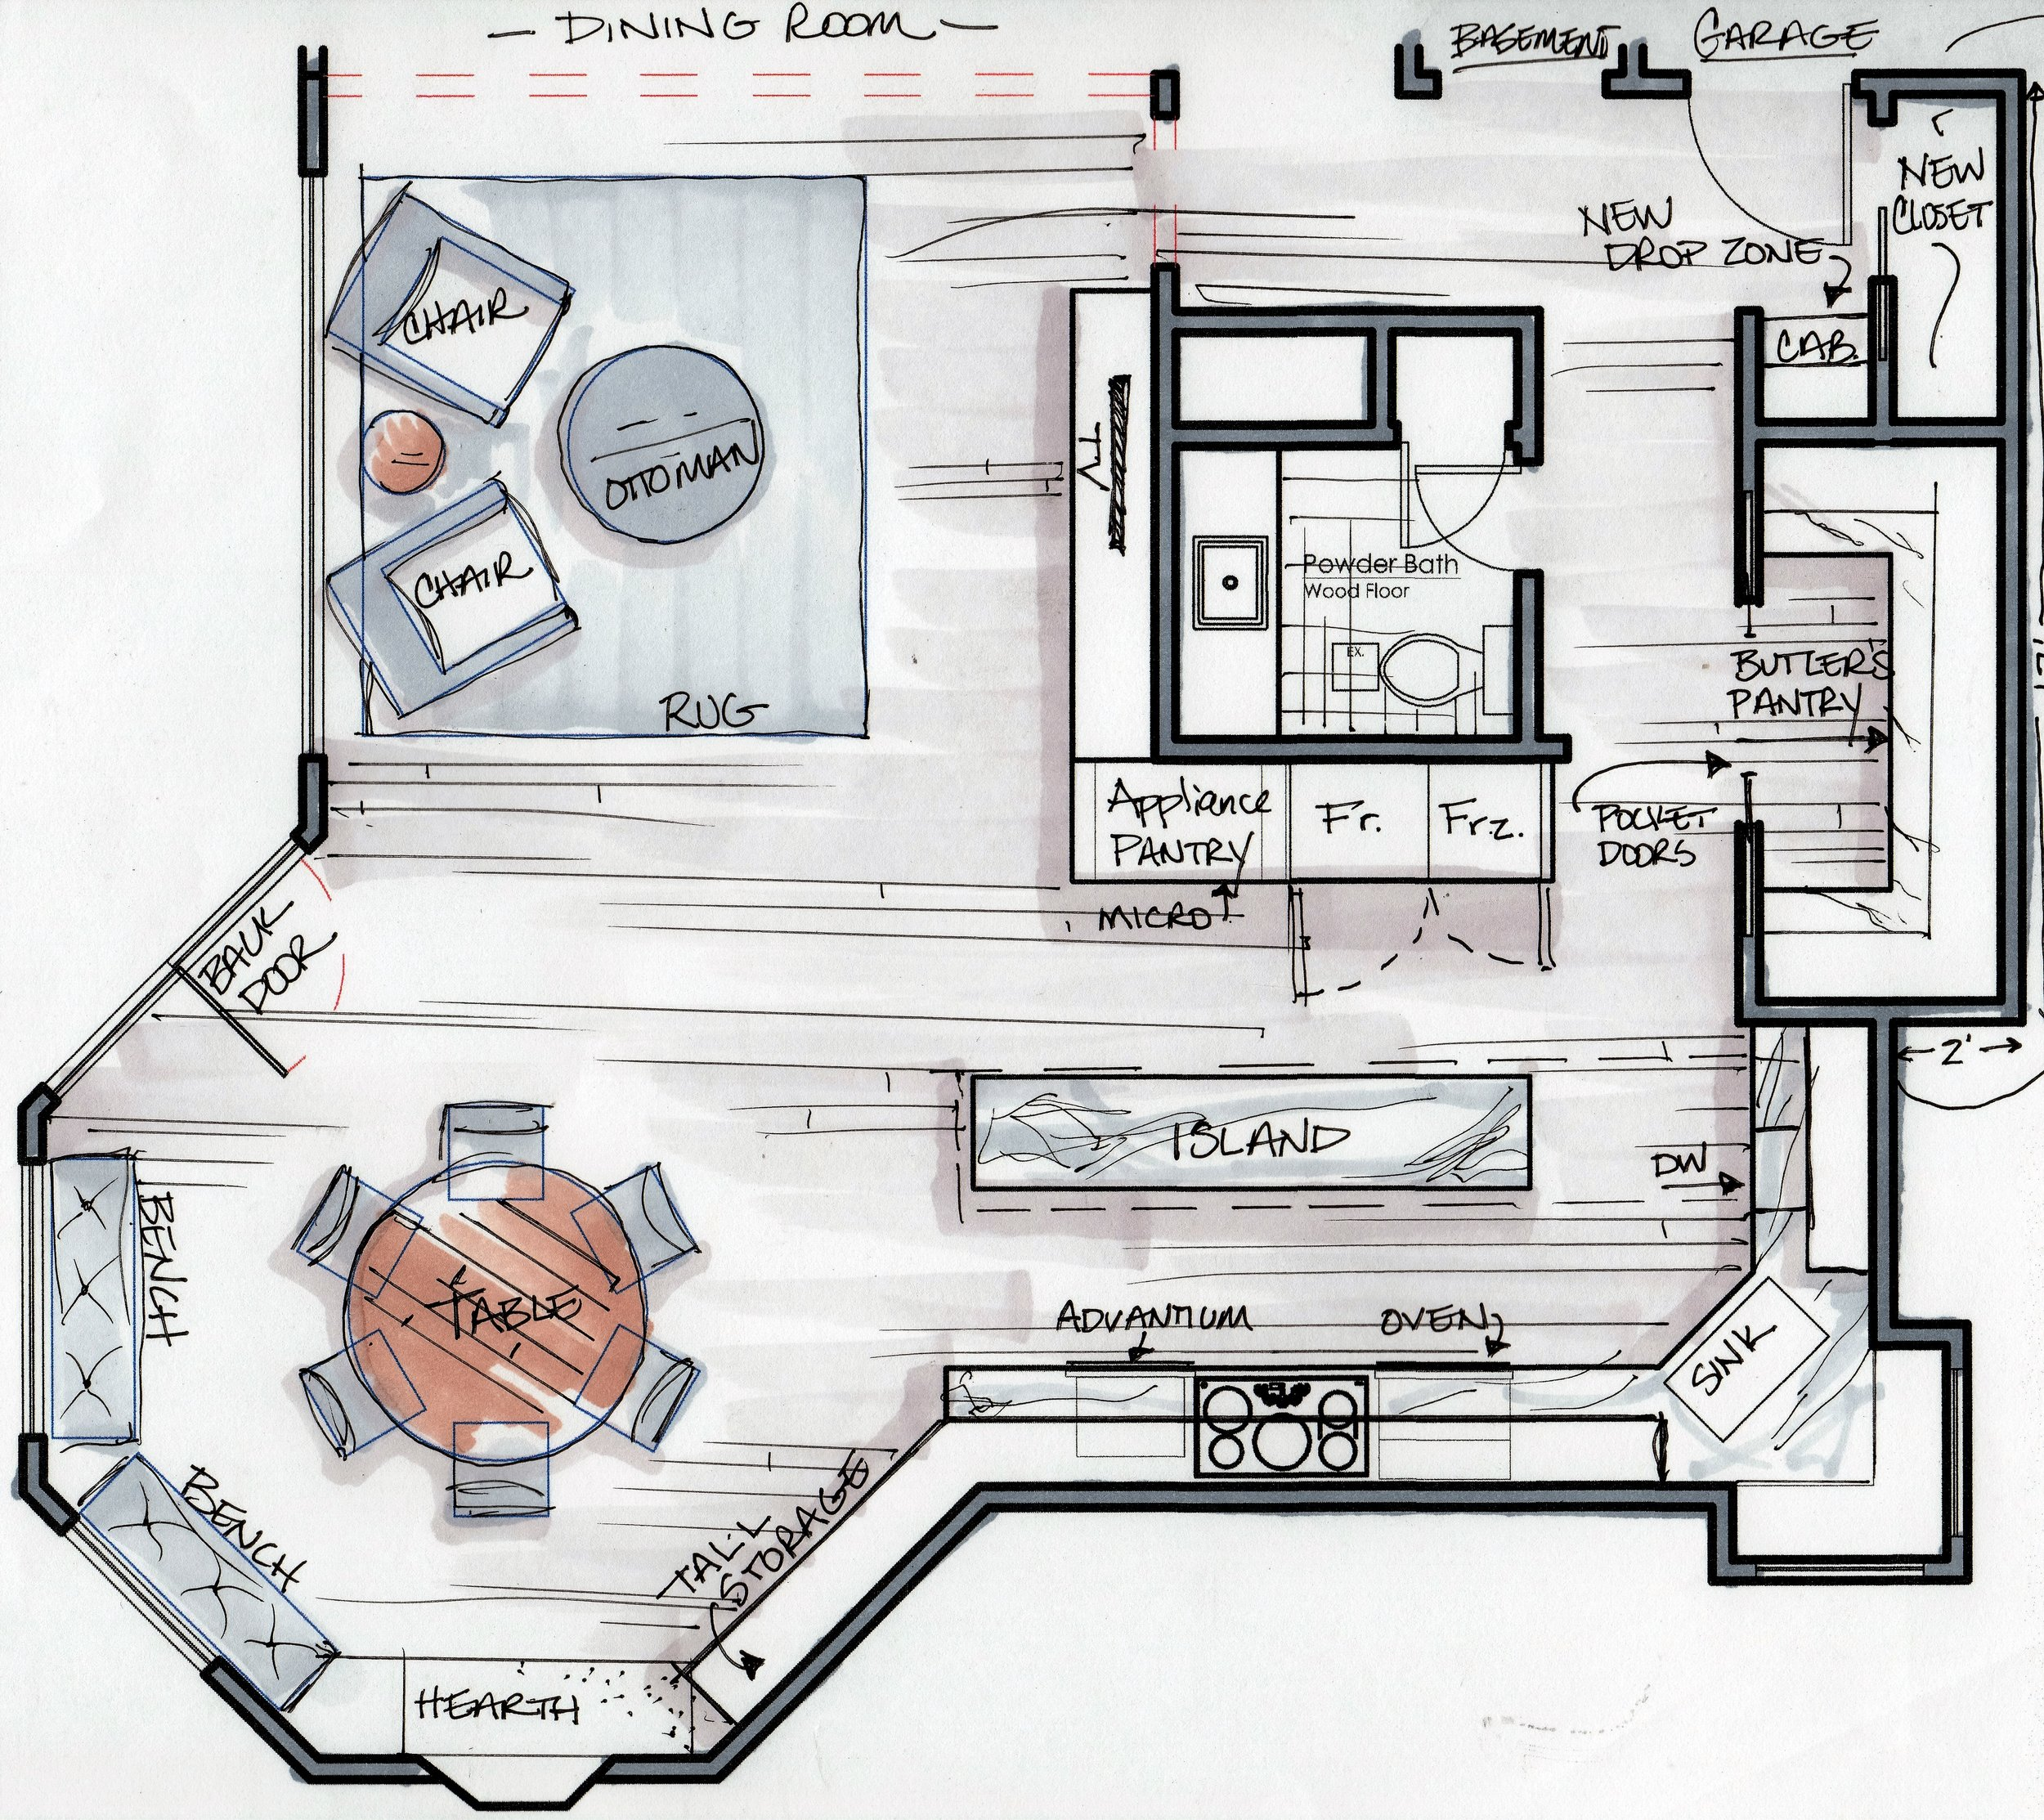 BR_KitchenPlanSketch006.jpg